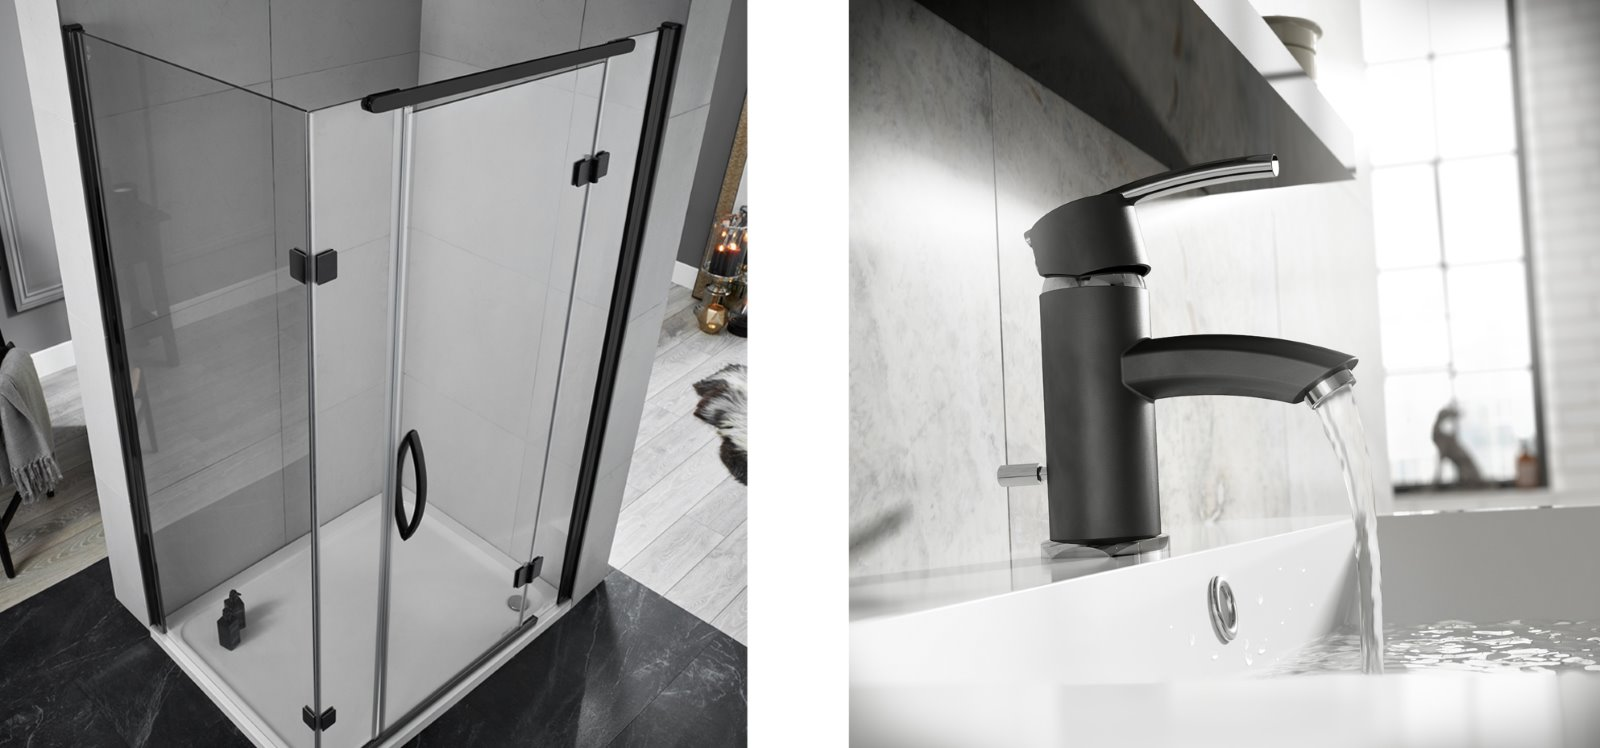 matte_black_bathroom_tap_showerscreen 2